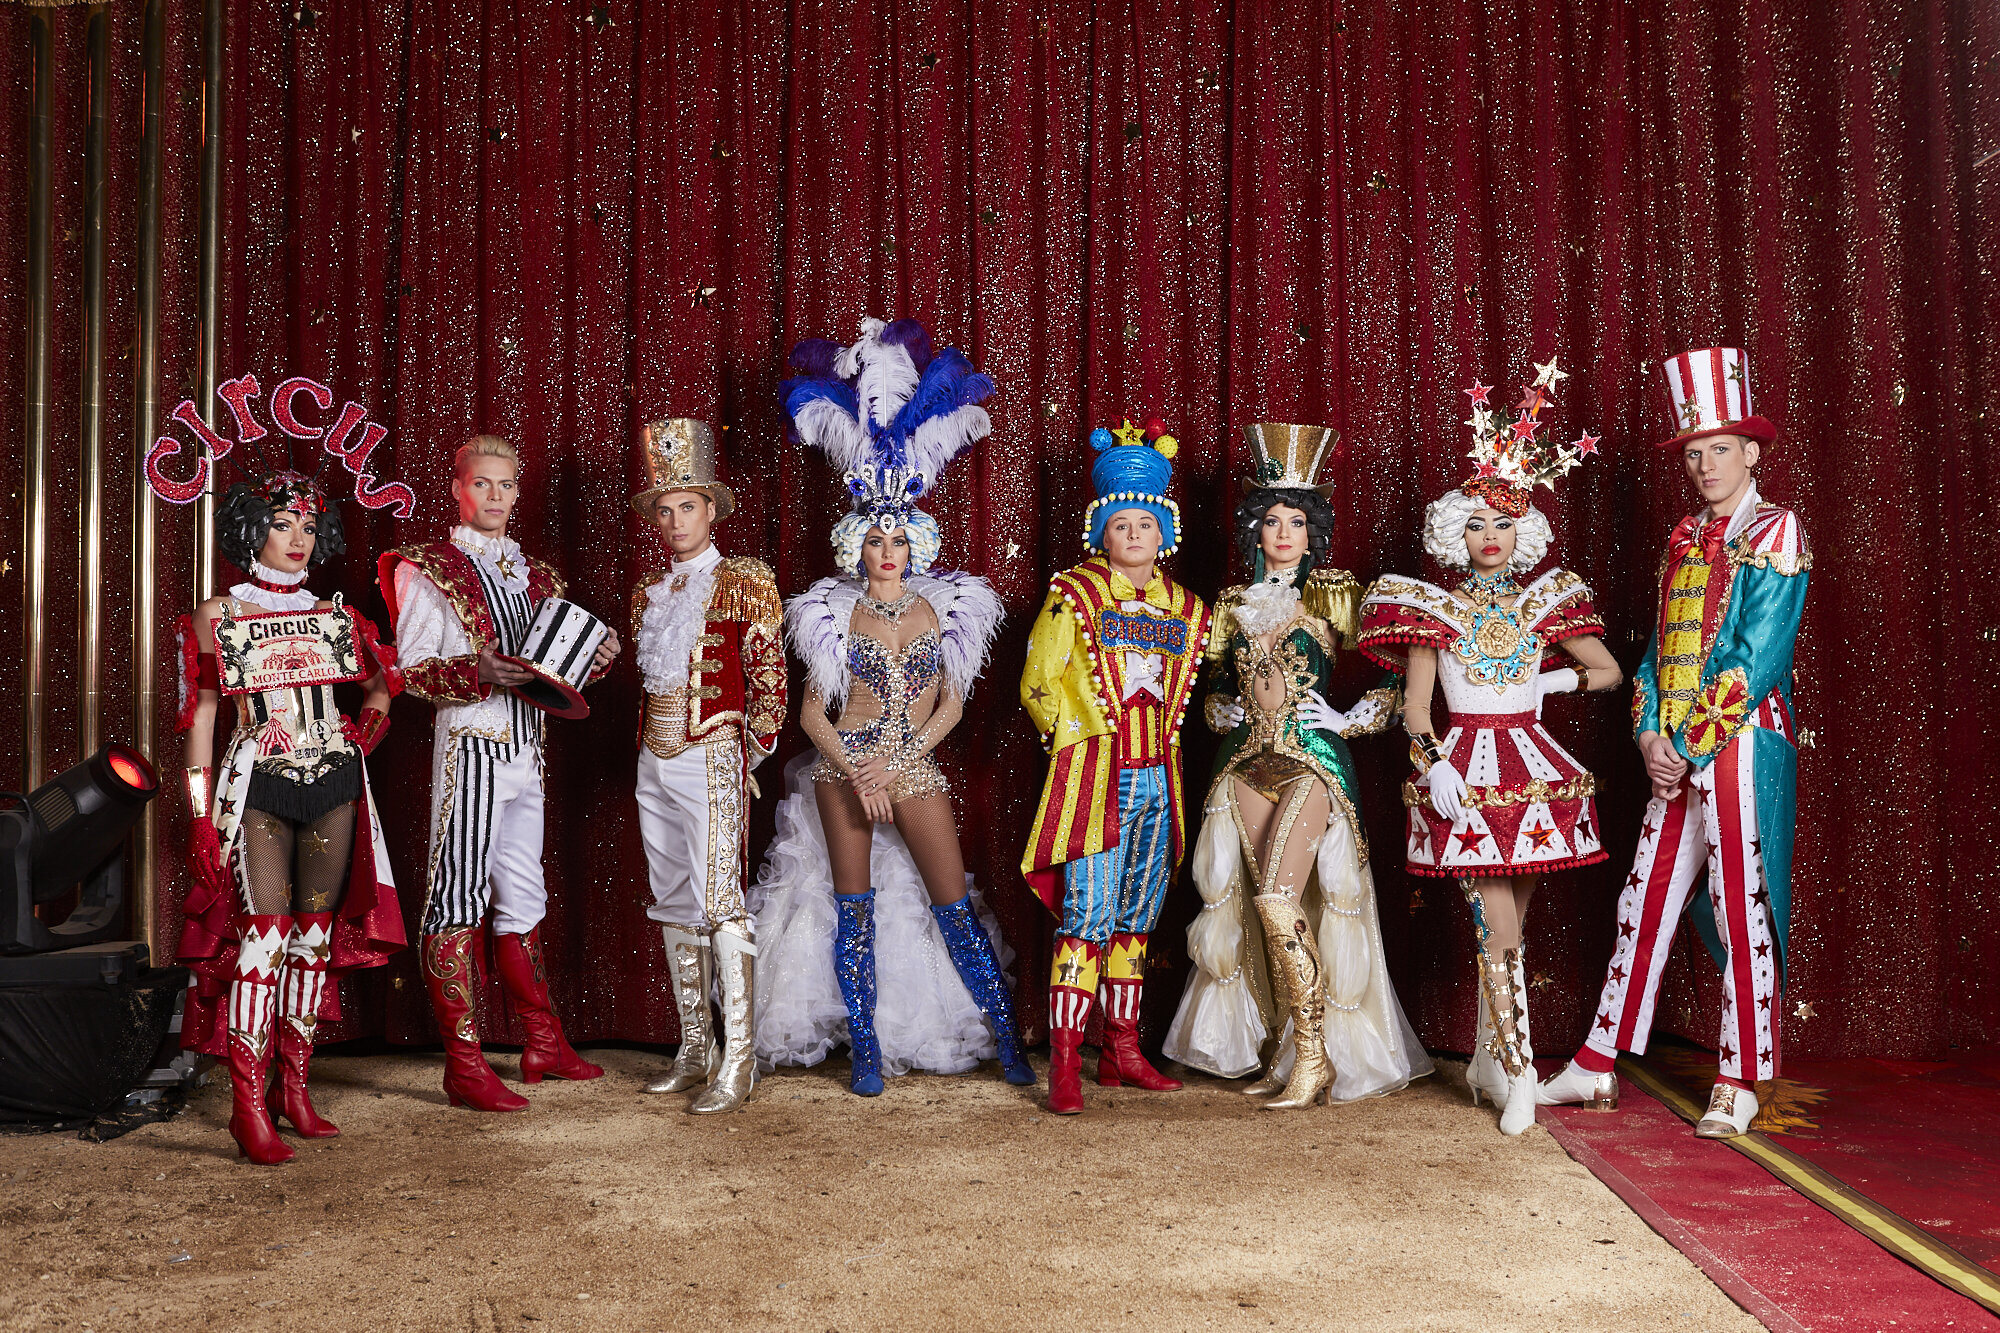 Artists from Gia Eradze's famous Royal Russian Circus